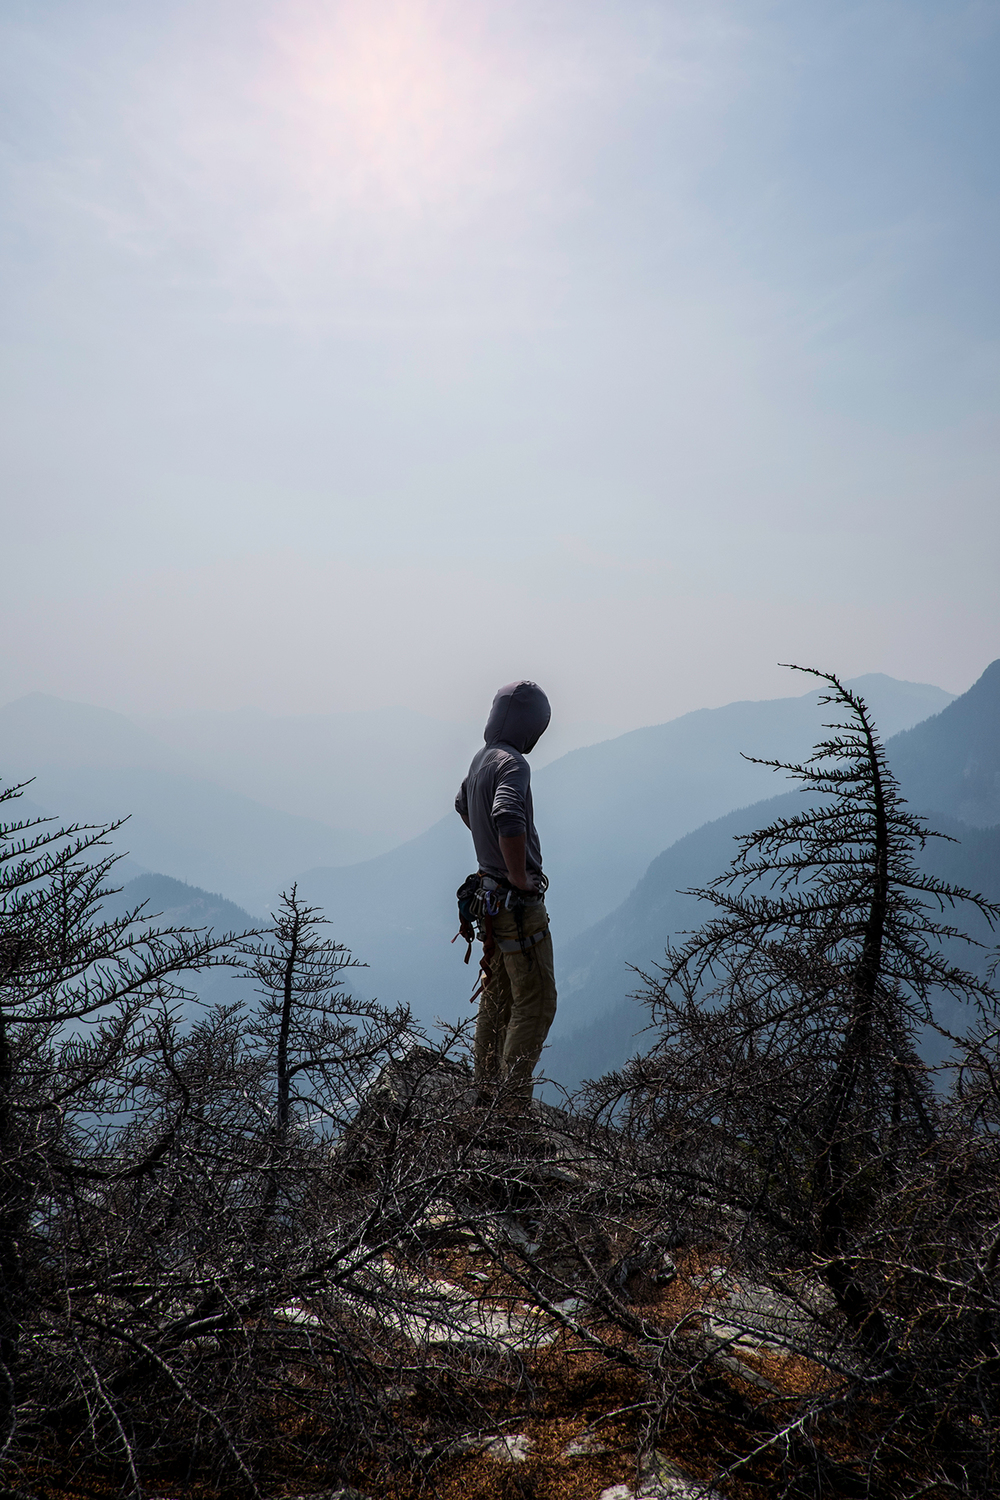 A climber surveys Snoqualmie Pass, shrouded in smoke from the fires in Washington state. August 22nd, 2015.